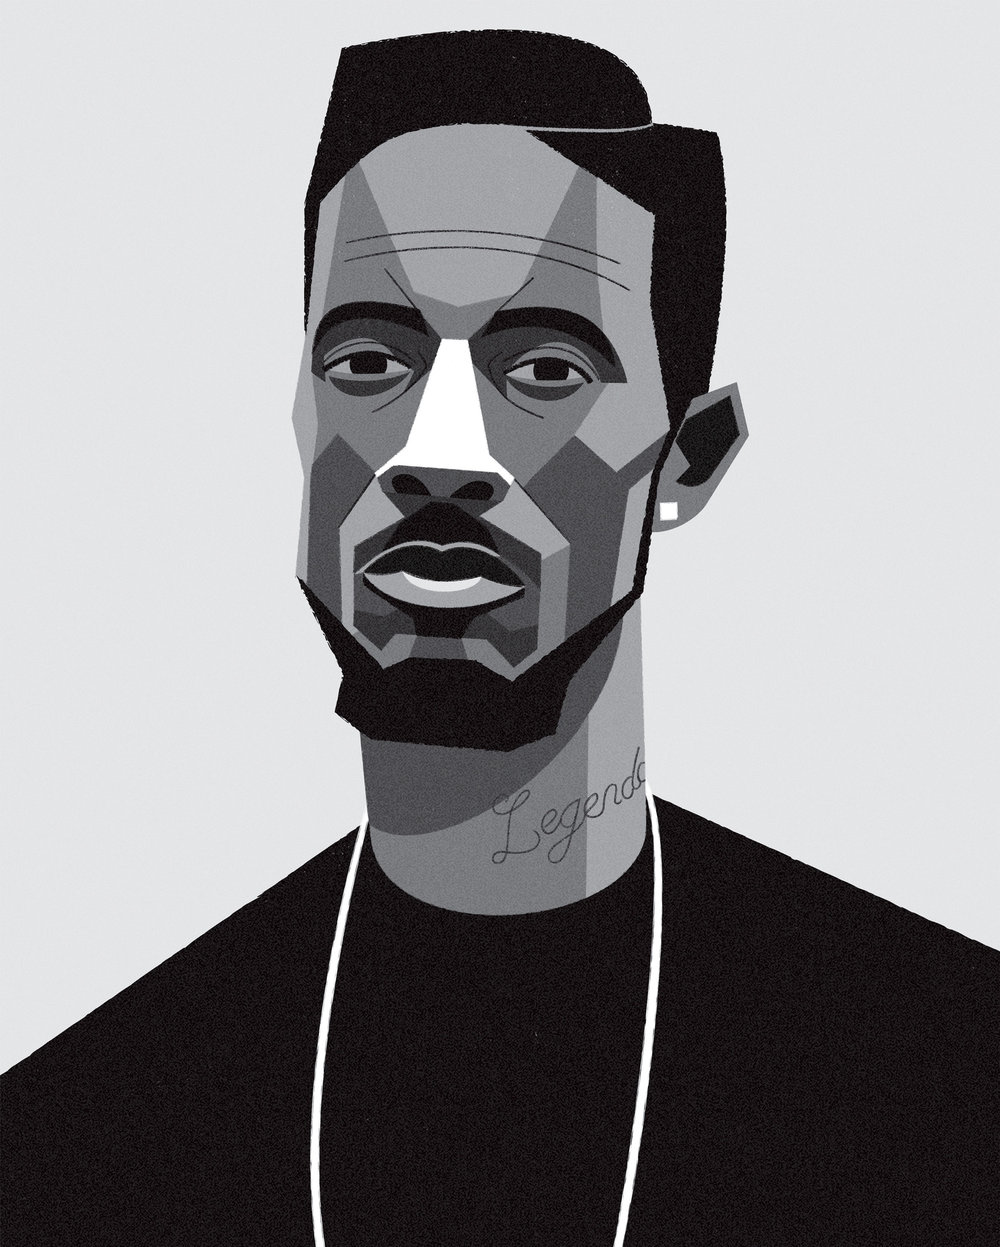 dale edwin murray freelance illustrator d double e grime uk portrait illustration